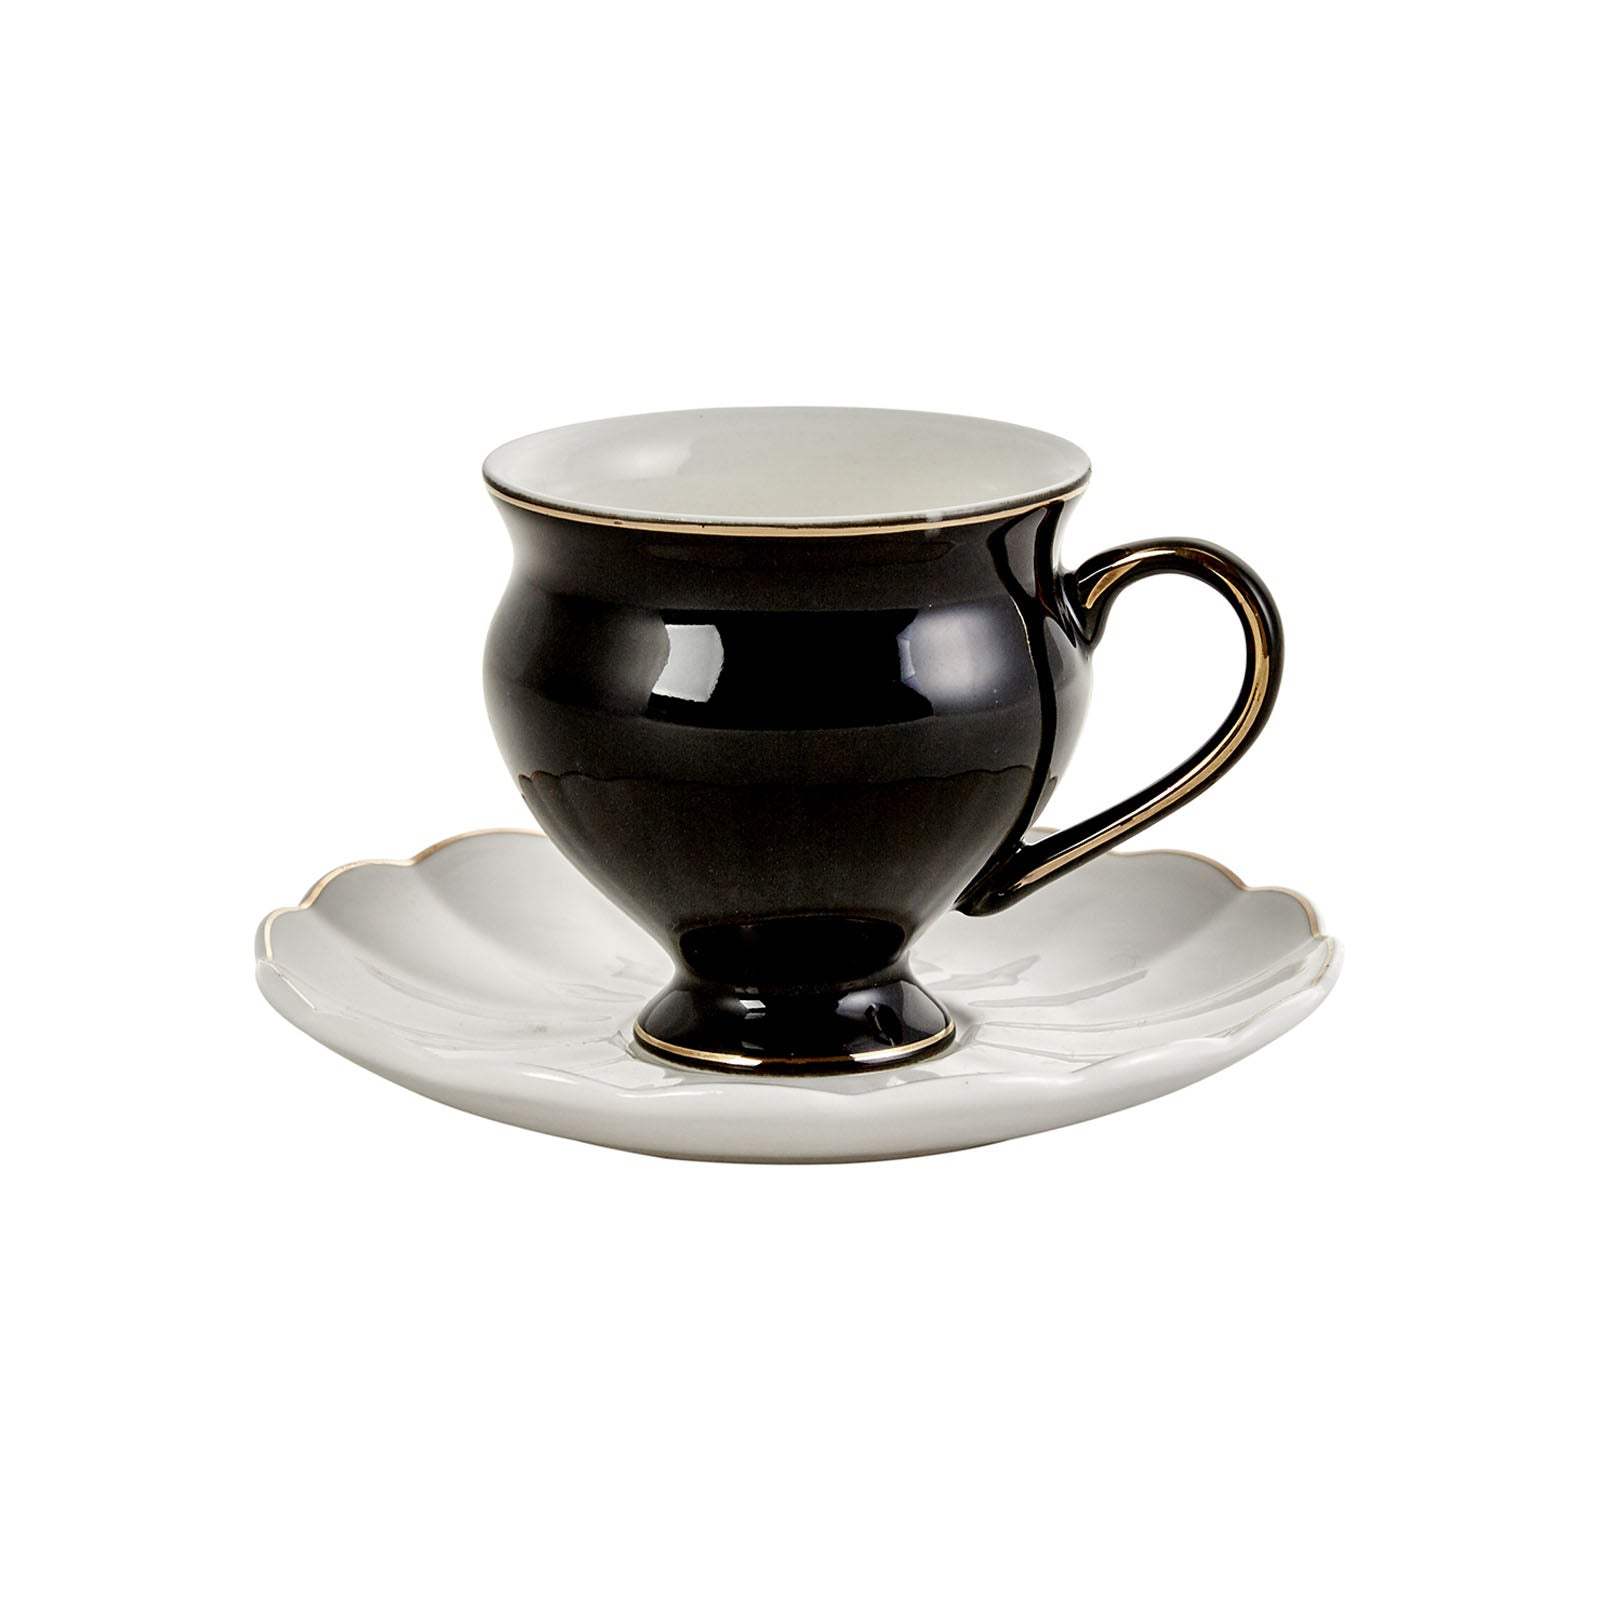 Black Swan 6 Seater Coffee Cup Set 153.01.01.3874 -  طقم فناجين قهوة 6 مقاعد بلاك سوان - Shop Online Furniture and Home Decor Store in Dubai, UAE at ebarza